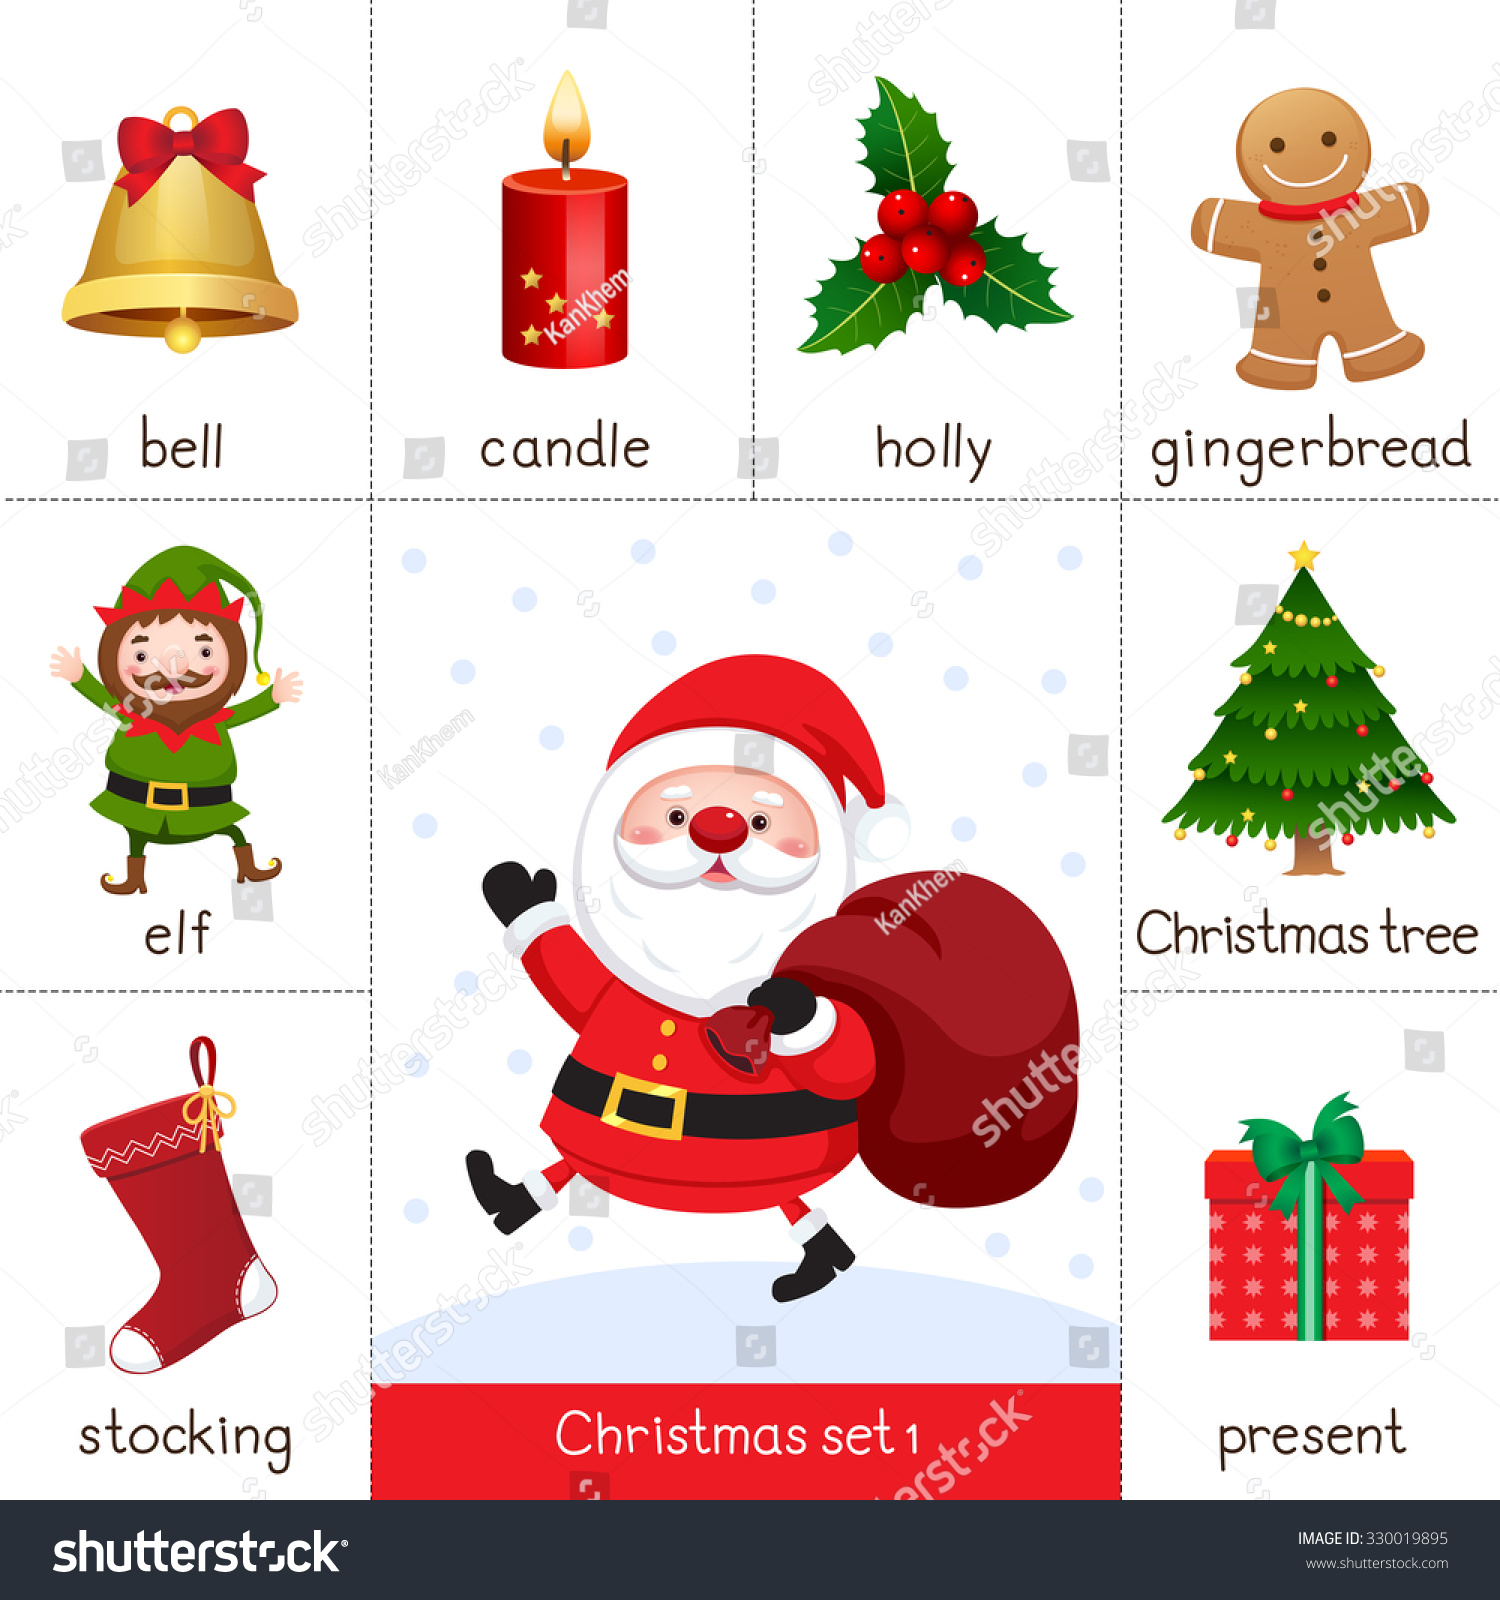 Illustration Printable Flash Card Christmas Set Stock